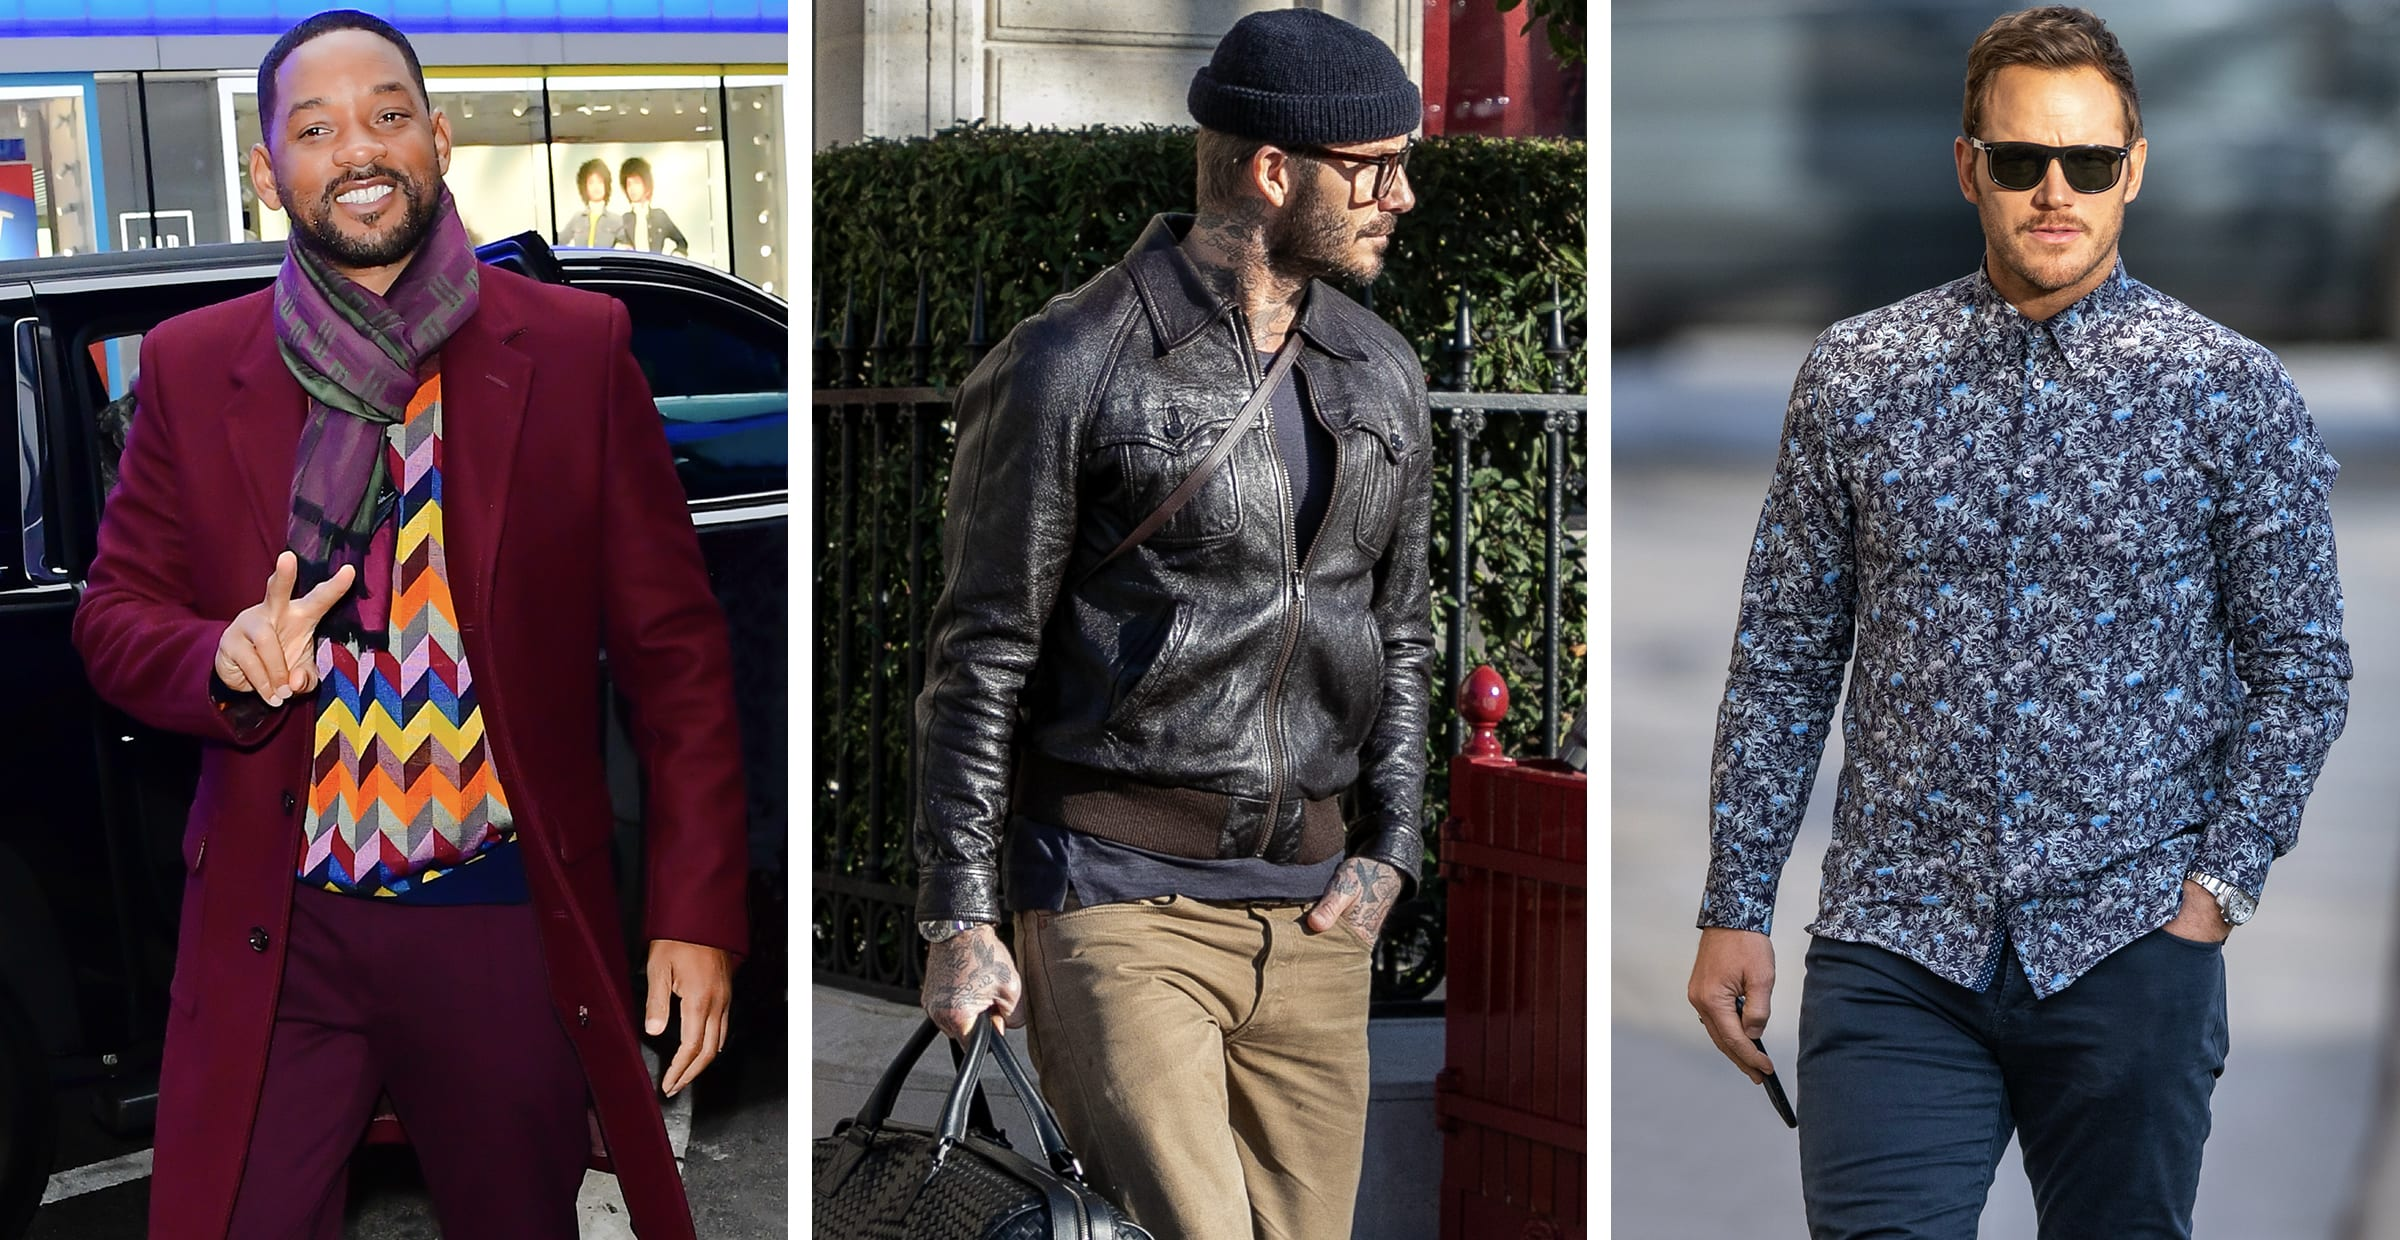 Will Smith, David Beckham, and Chris Pratt featured as our celebrity dad's